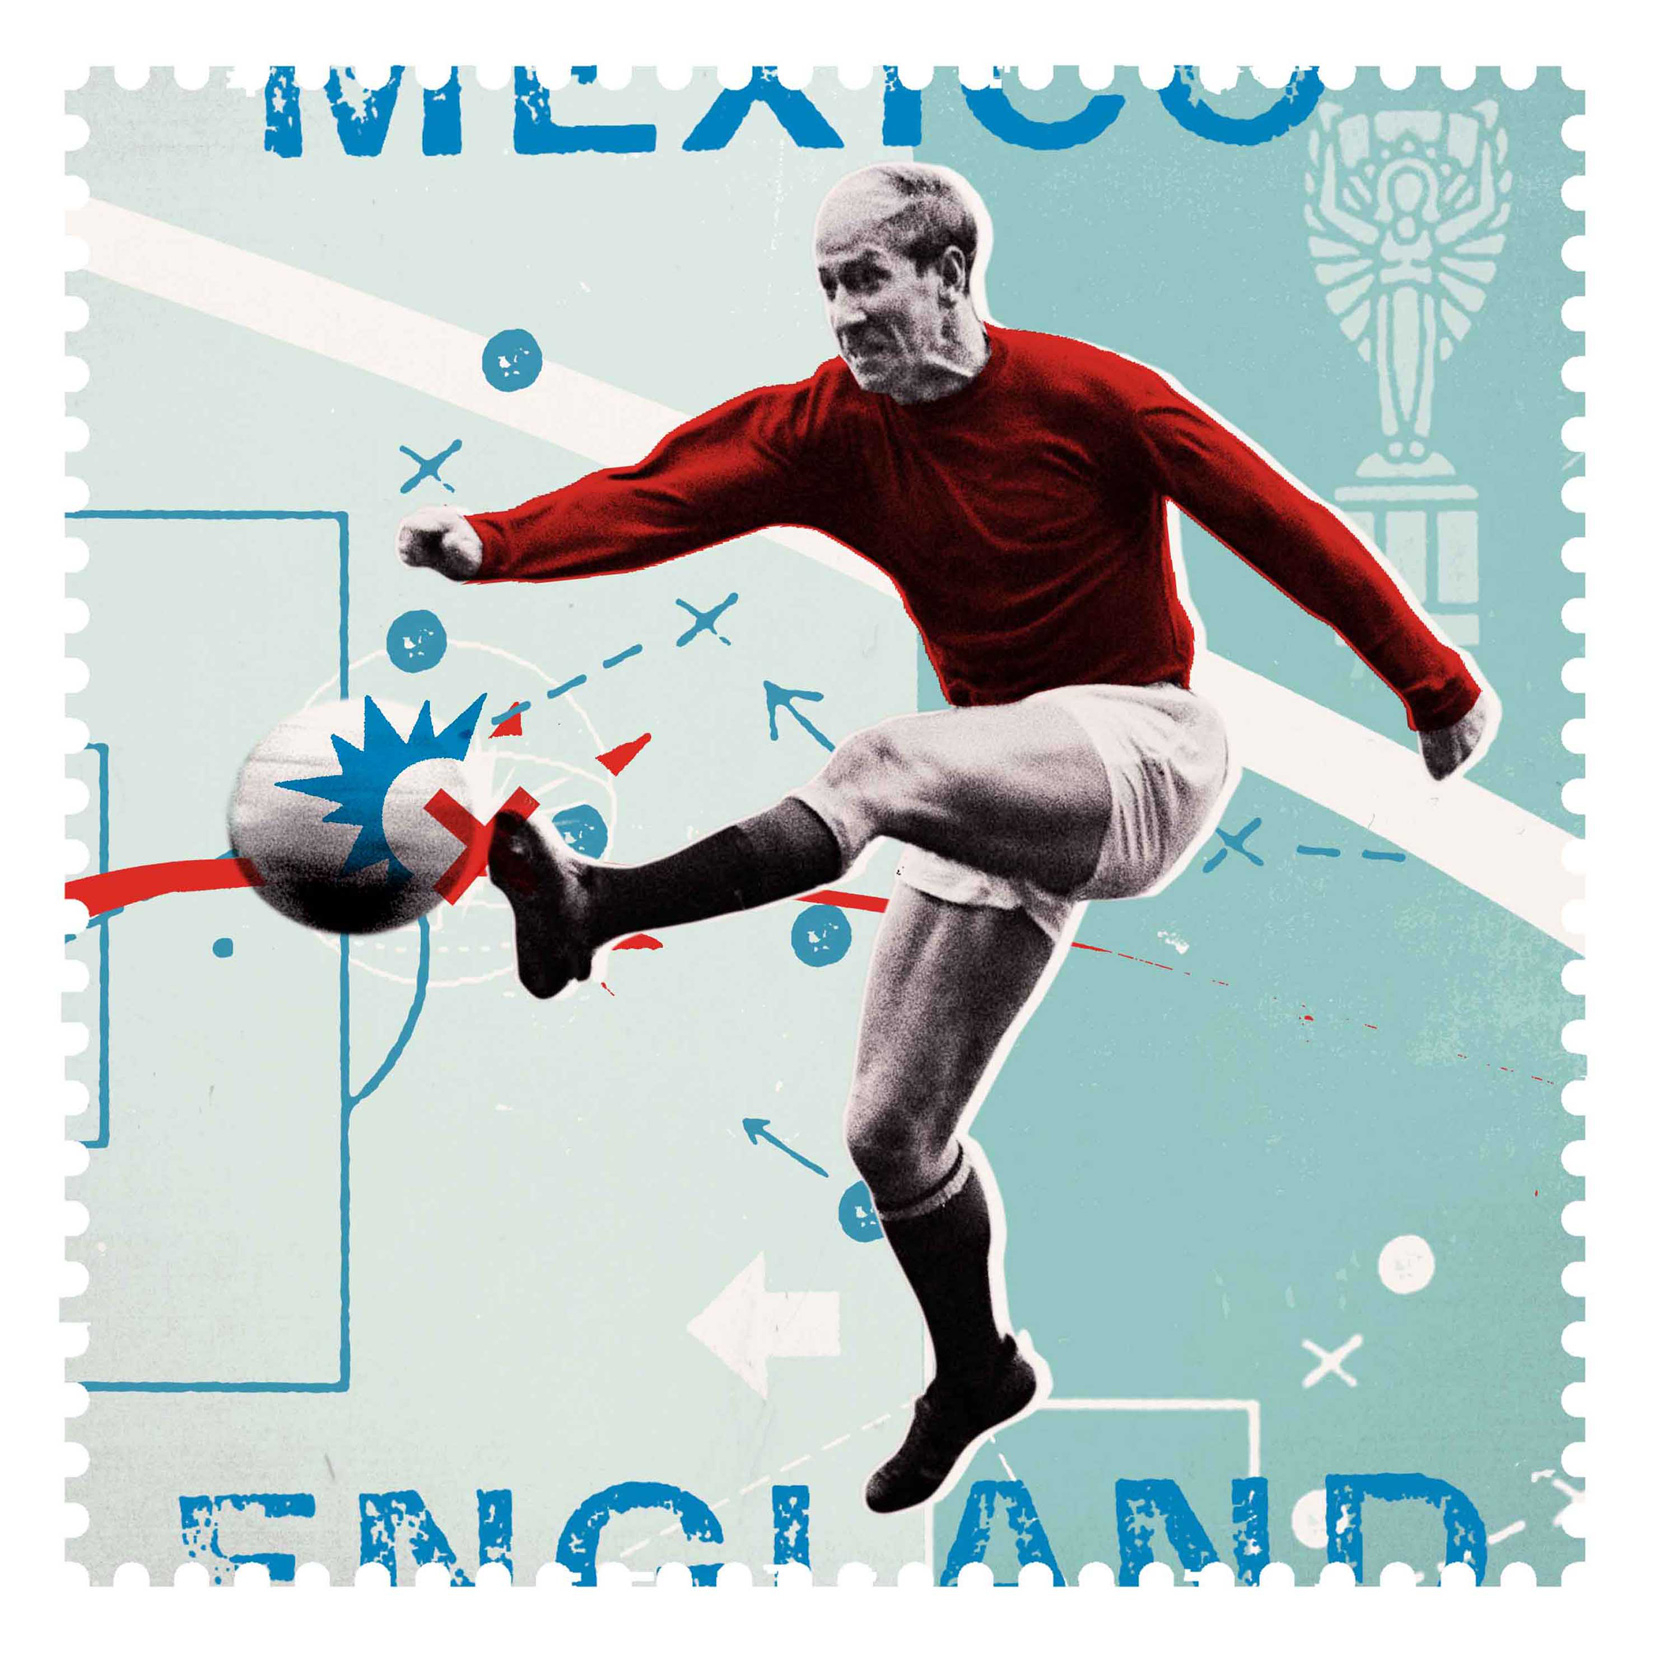 Bobby Moore 1 / Royal Mail